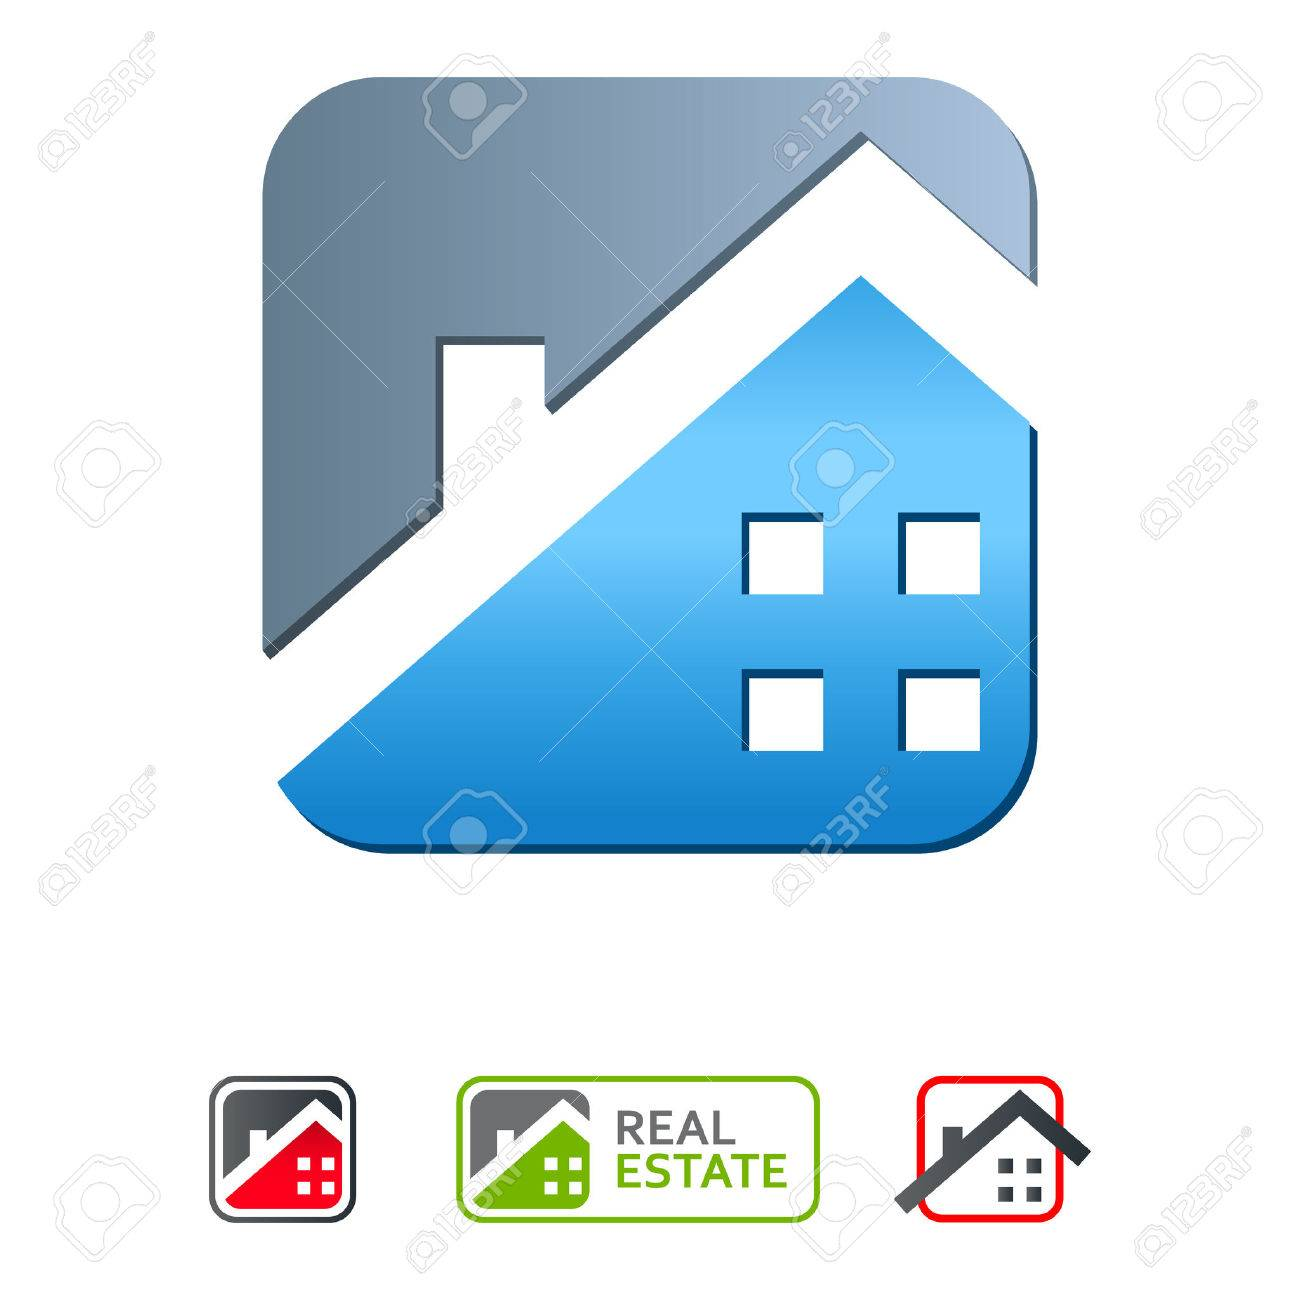 real estate icons Stock Vector - 24183833